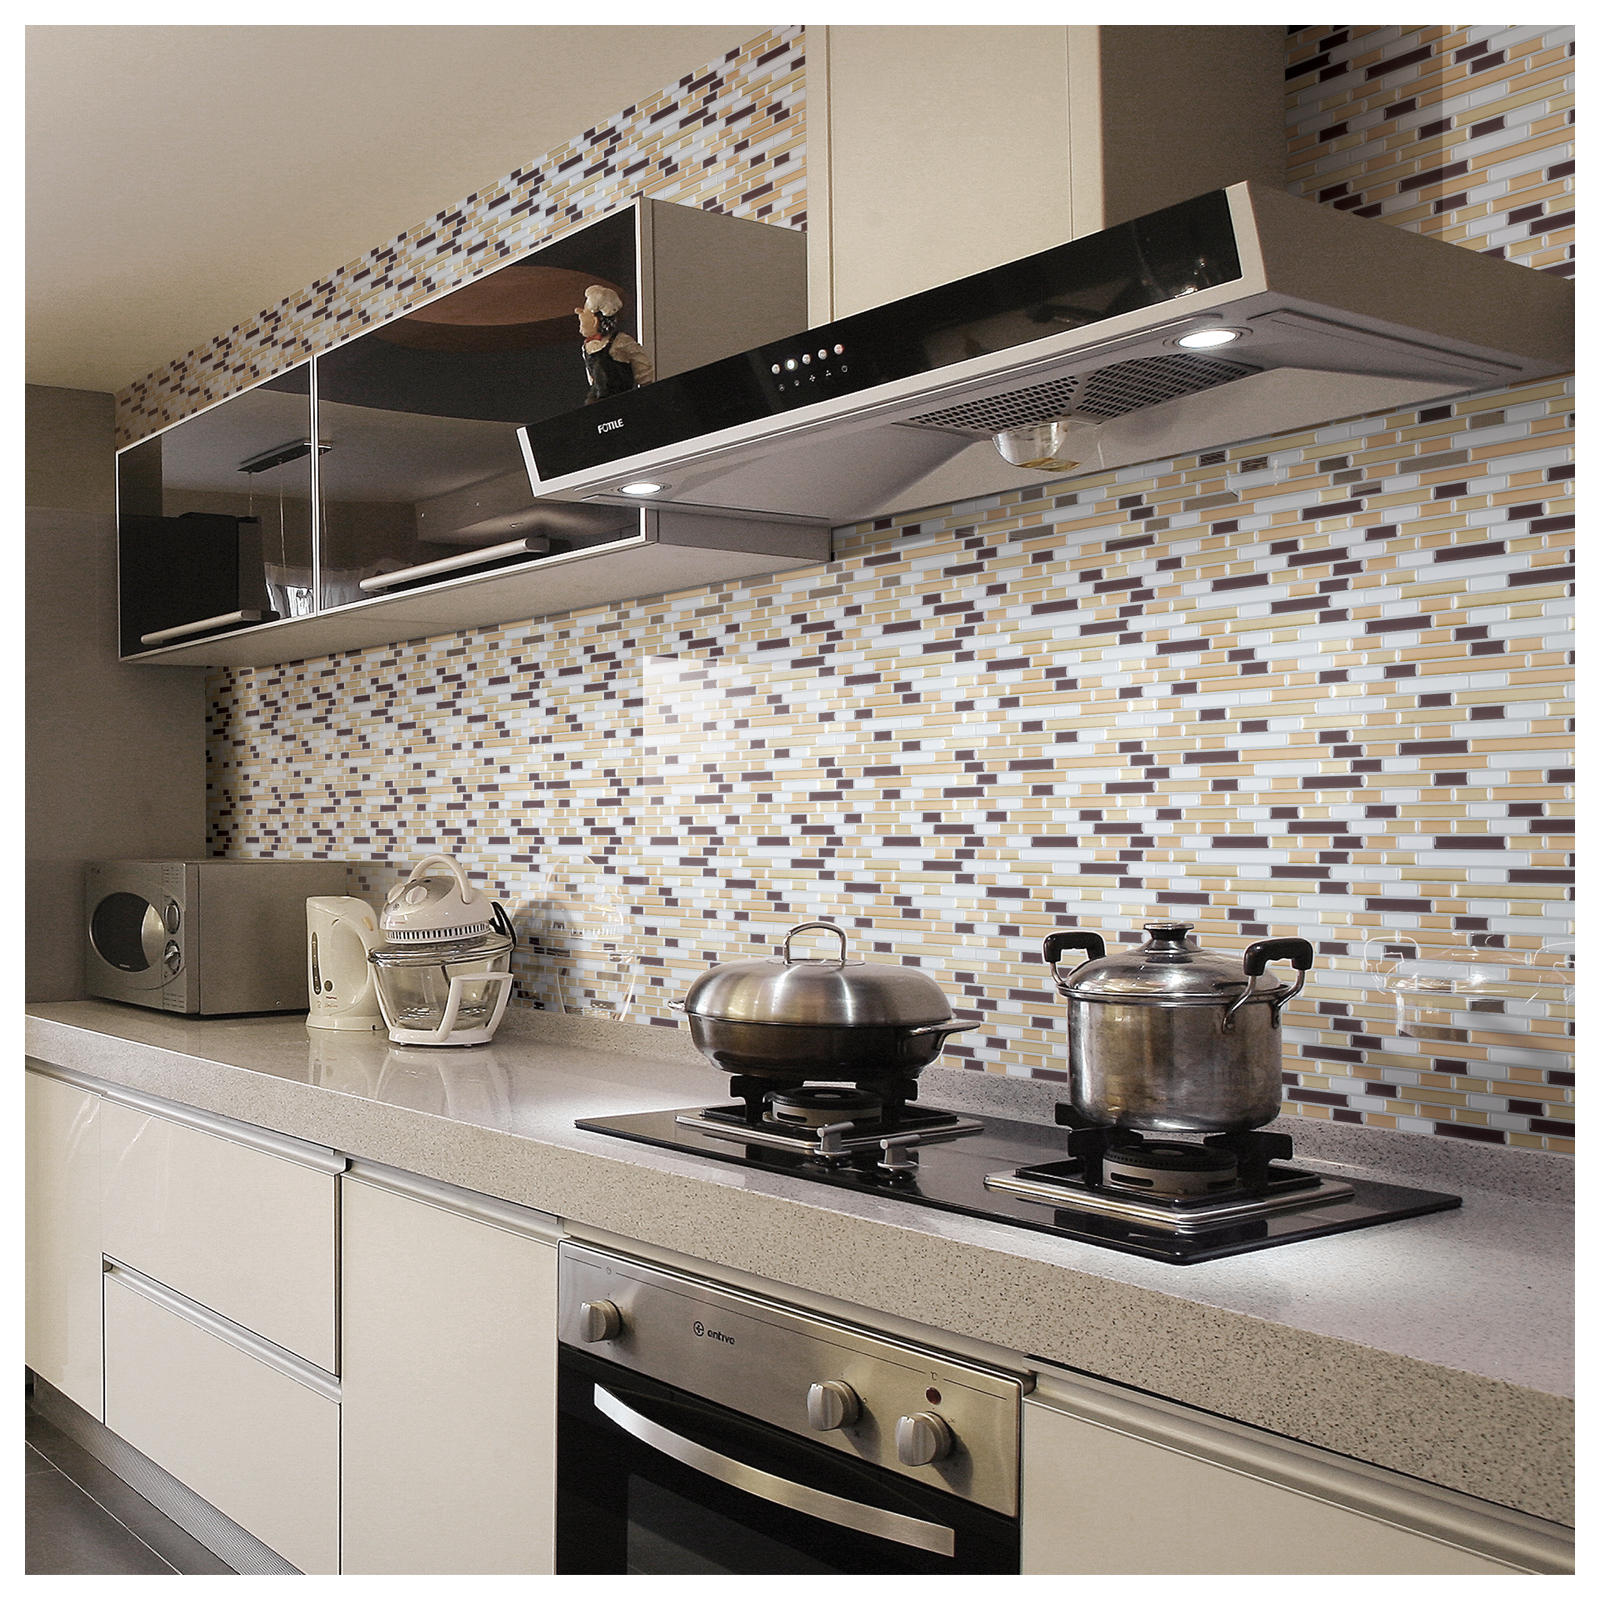 Art3d 10 Pack Peel N Stick Backsplash Tile Sticker Vinyl Wall